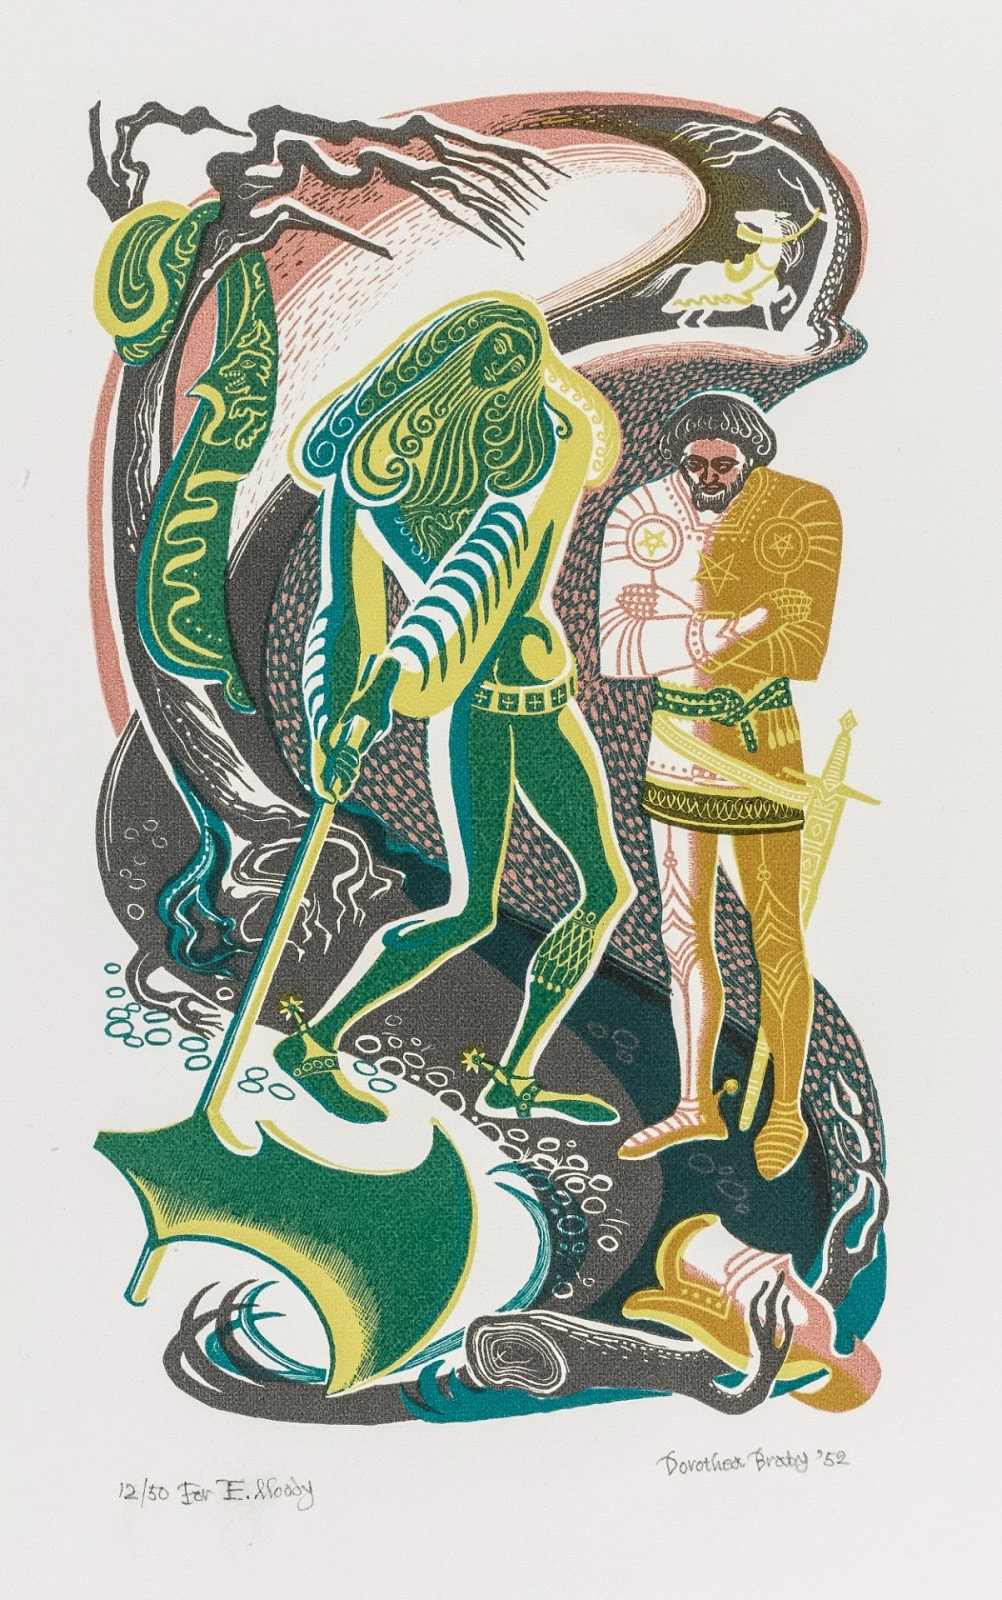 james russell sir gawain the green knight in pictures the moment of truth for gawain dorothea braby golden cockerel press 1952